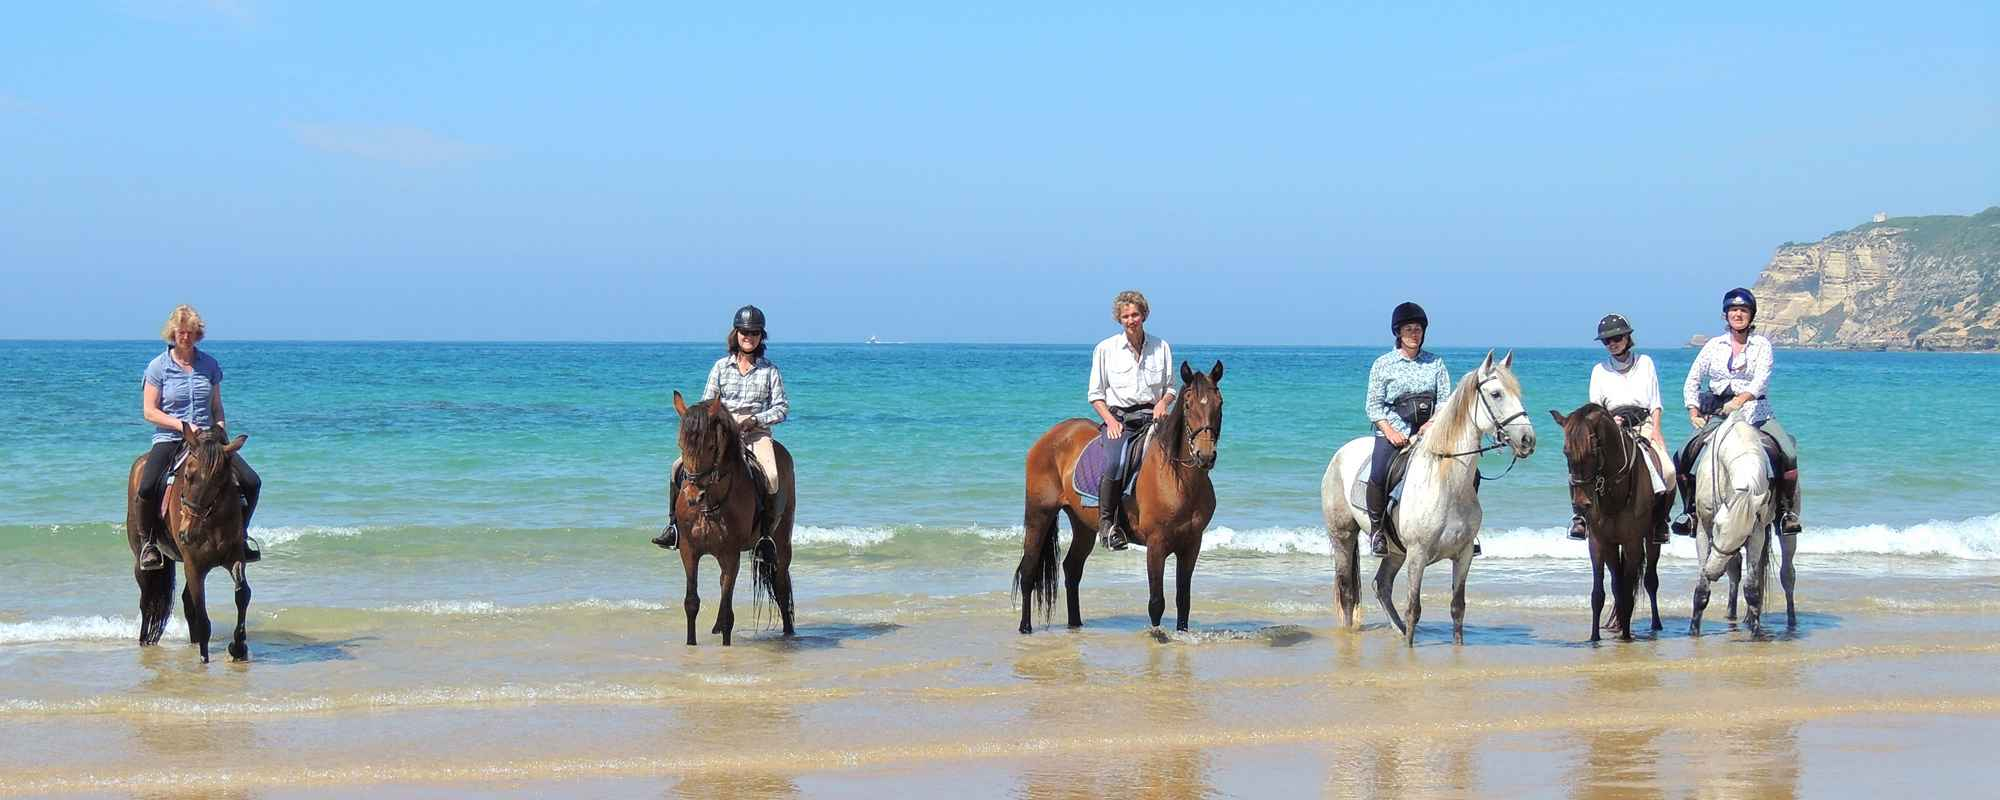 Fantastic beach horse riding holiday